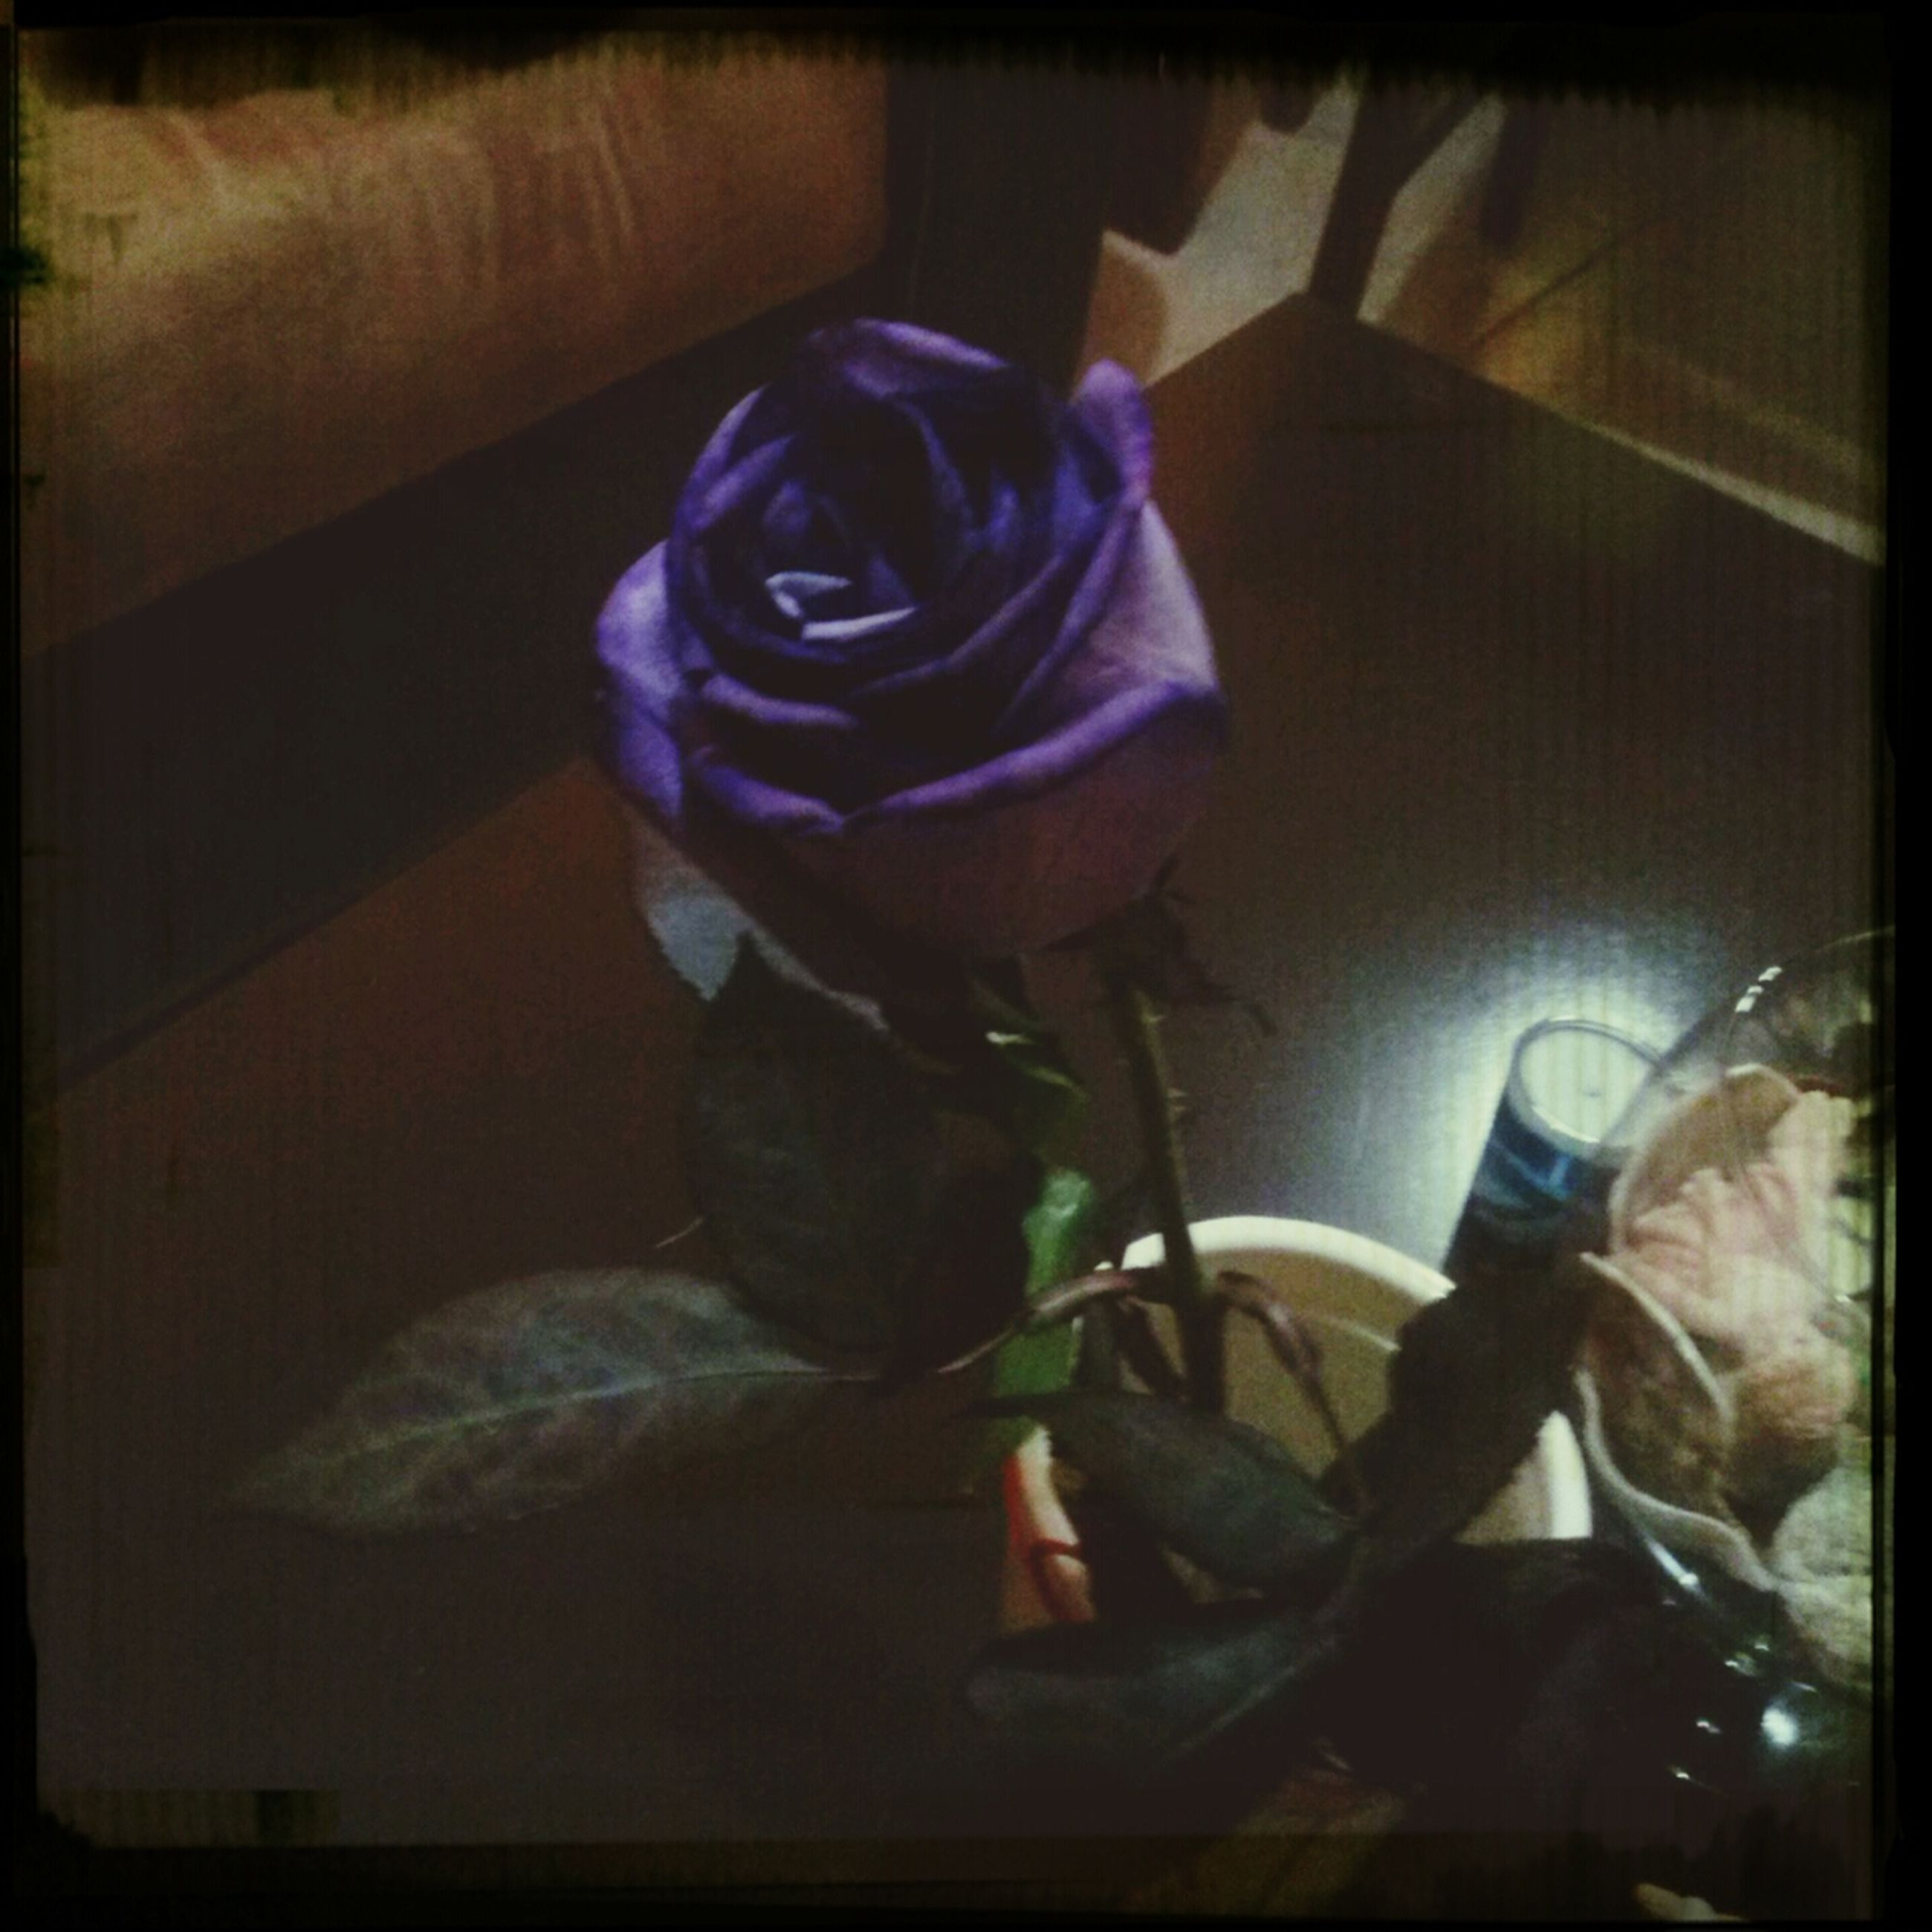 indoors, transfer print, auto post production filter, home interior, bed, flower, domestic room, bedroom, childhood, high angle view, toy, purple, table, close-up, sitting, domestic life, still life, home